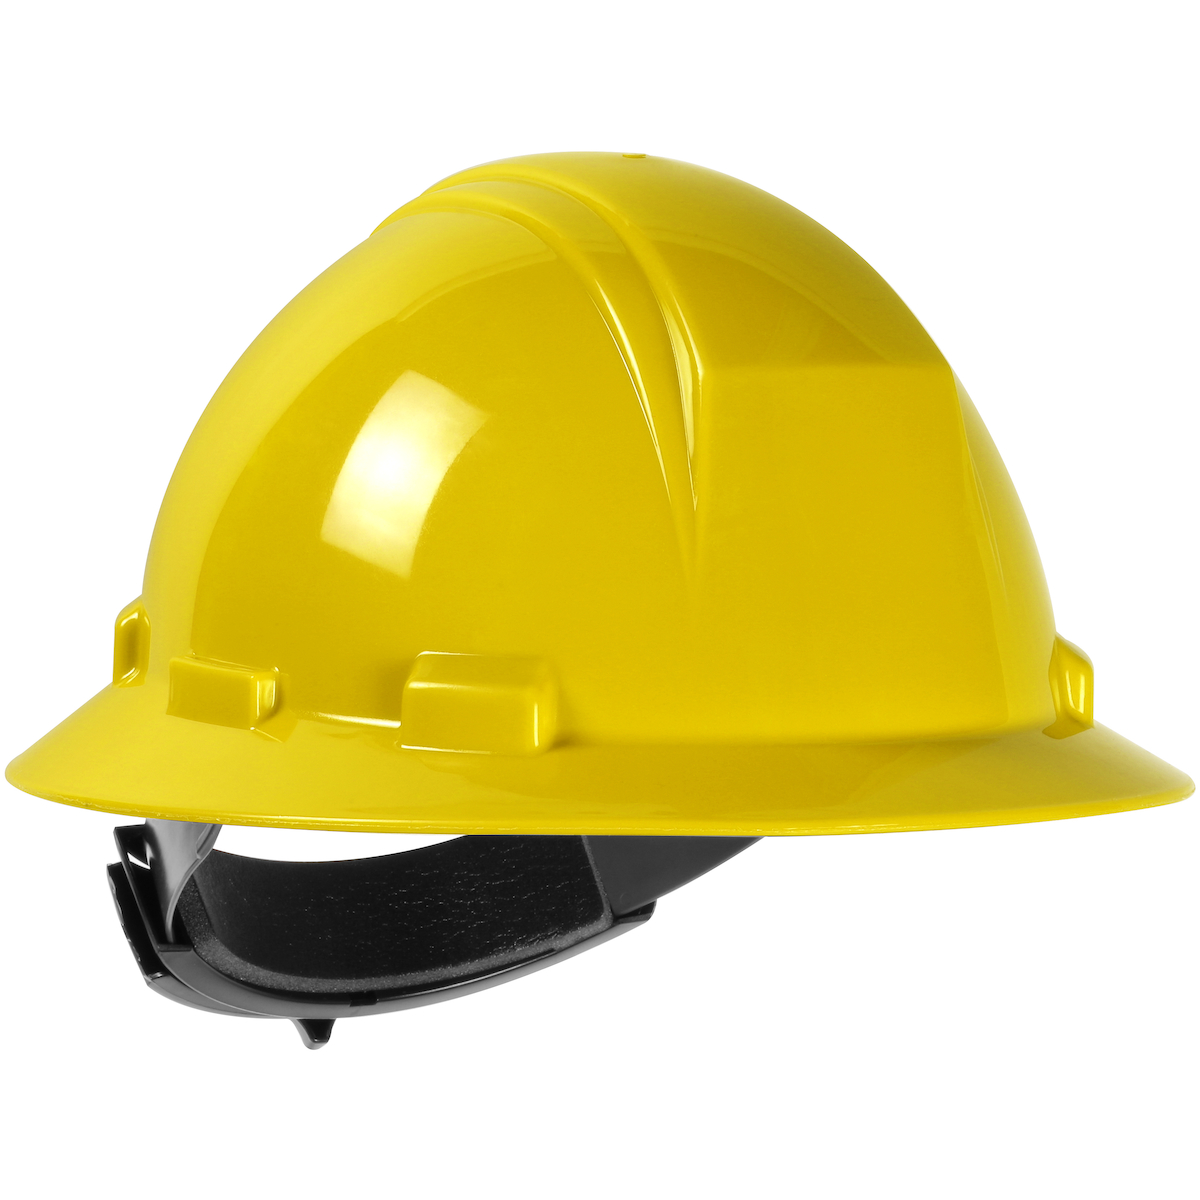 Type II Full Brim Hard Hat with HDPE Shell, 4-Point Textile Suspension and Wheel Ratchet Adjustment, Yellow, OS